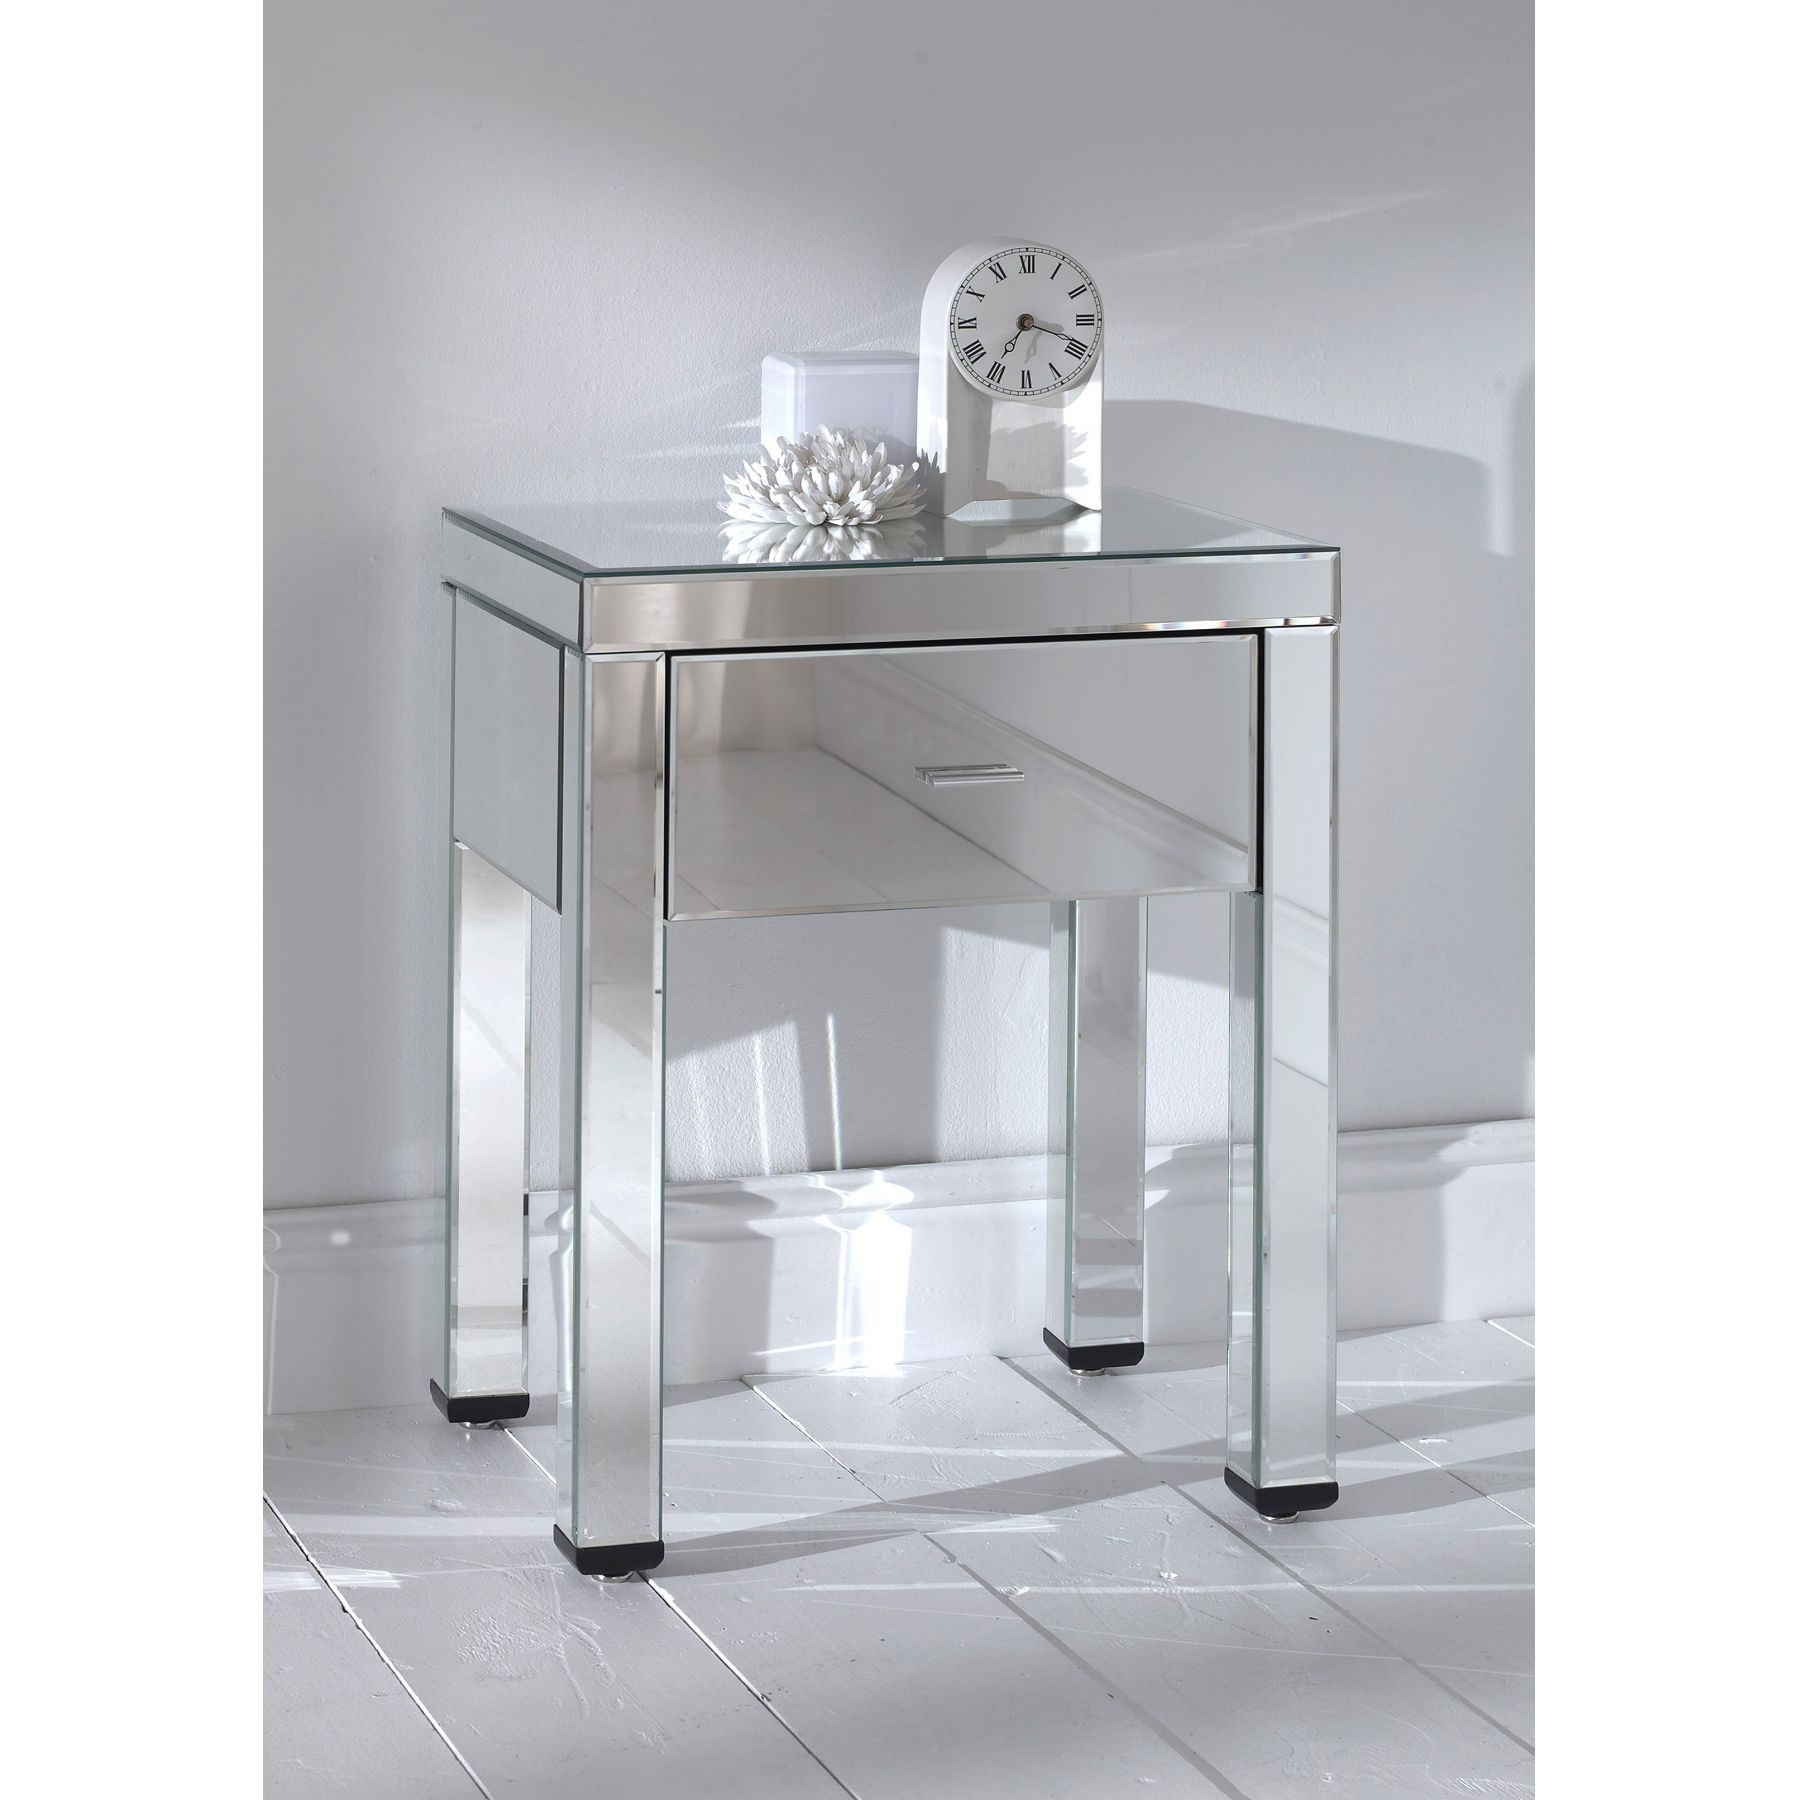 furniture elegant mirrored accent table for home ideas with single drawer plus tile floor and white wall decoration espresso bedroom antique brass coffee mosaic ethan allen desk